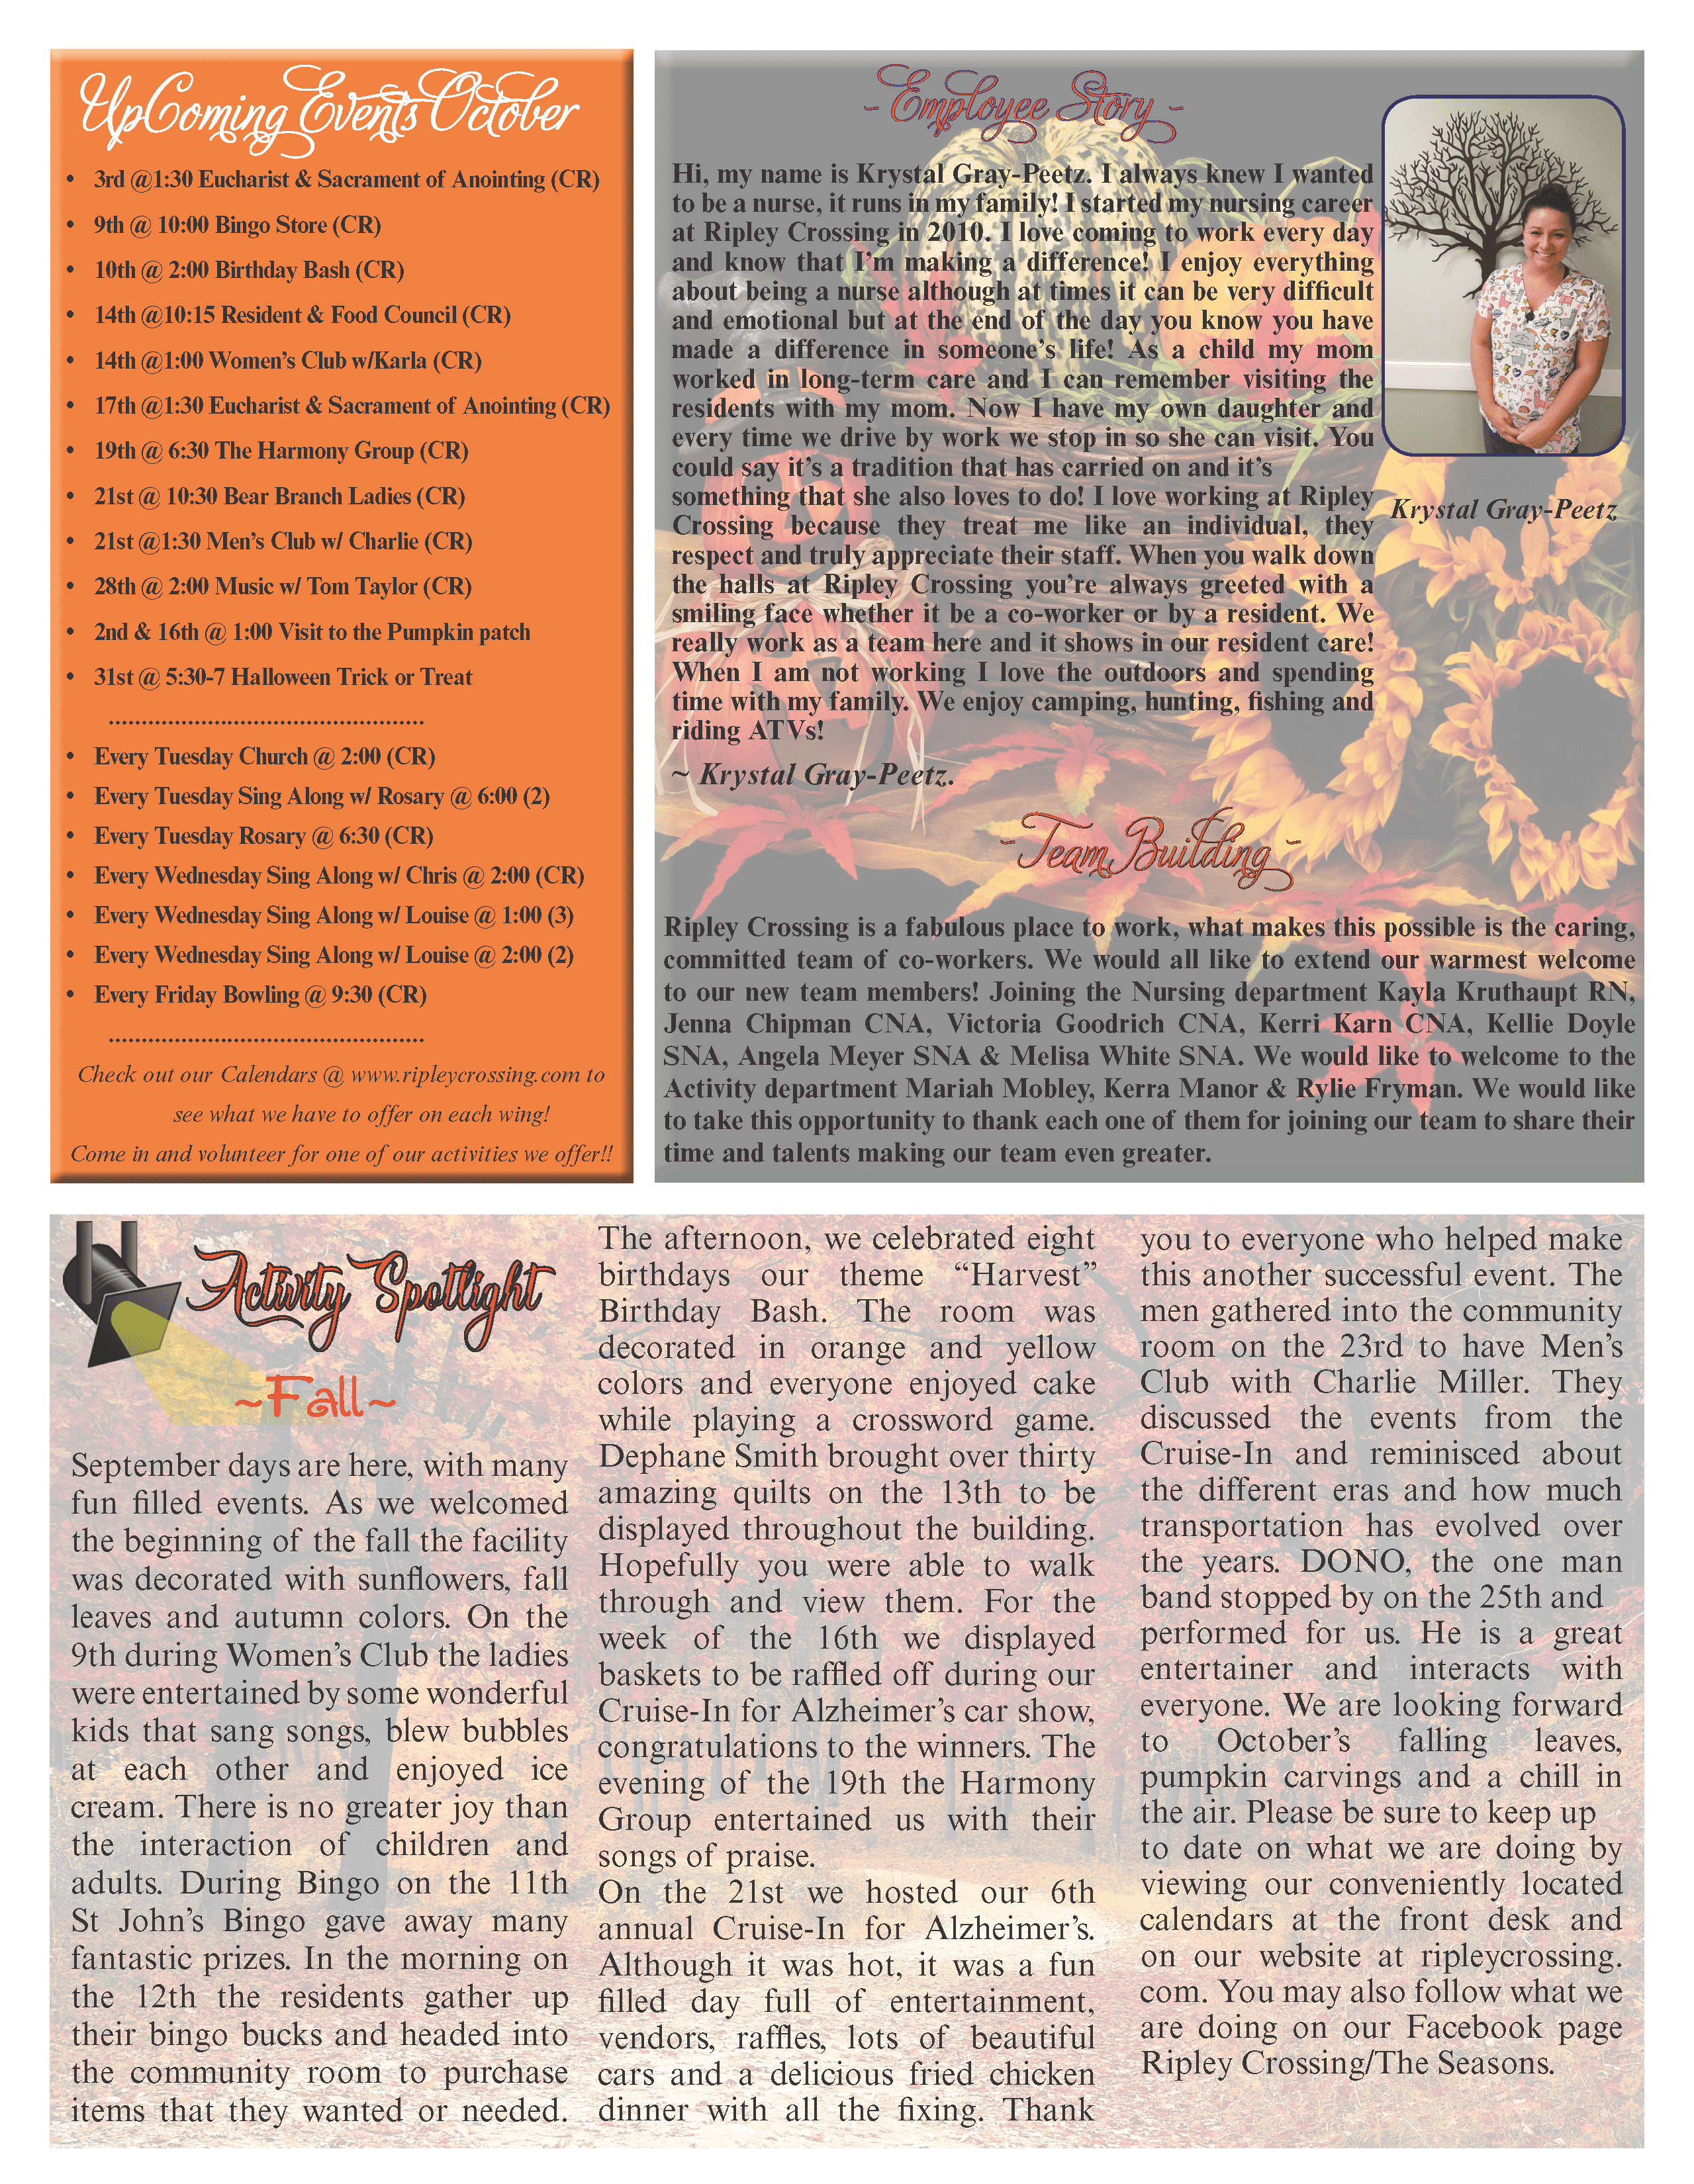 RC_NewOct2019vfinal_Part1_Page_2